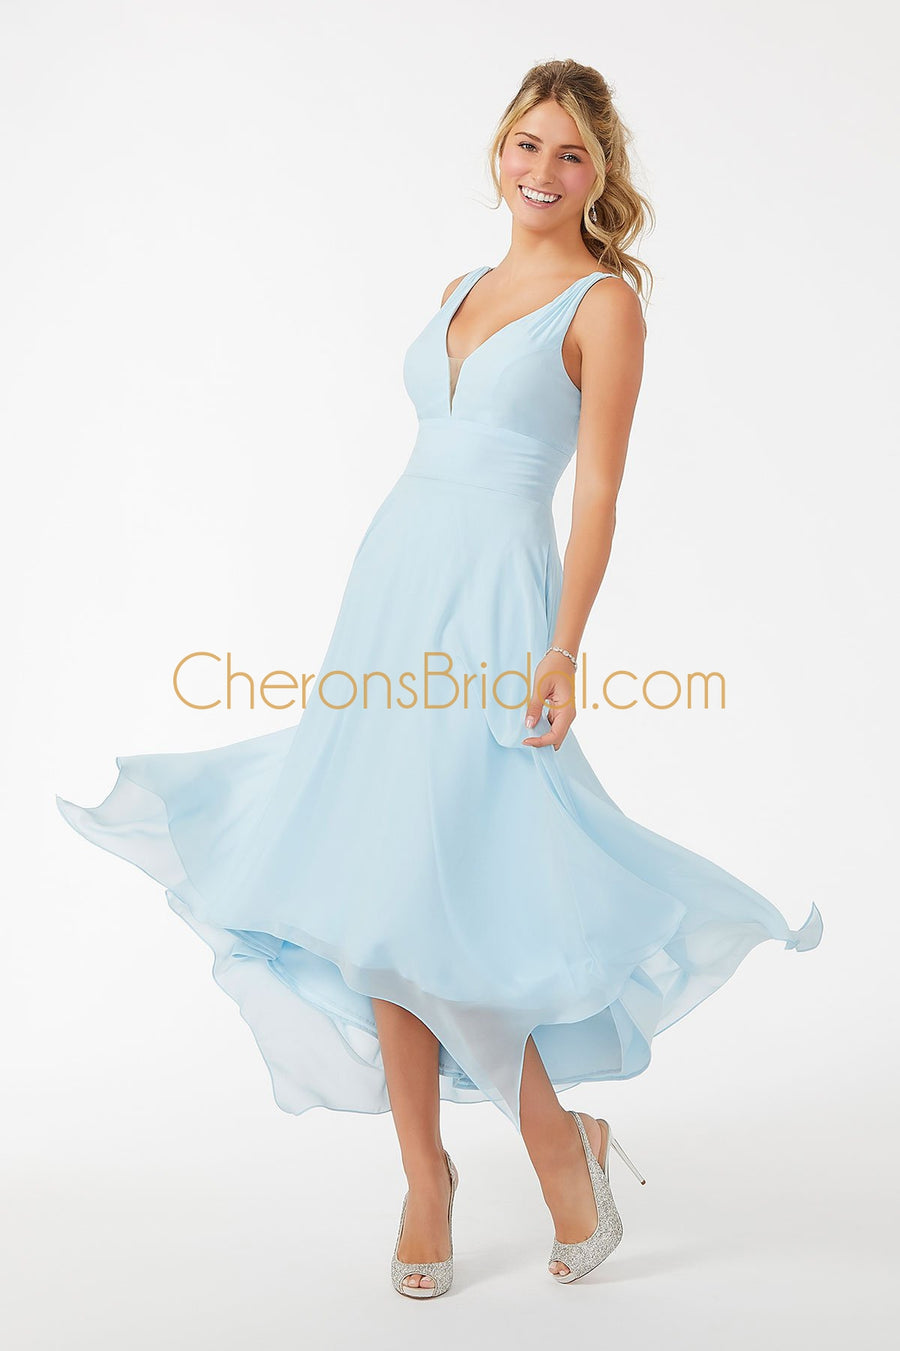 Morilee - 21701 - Cheron's Bridal, Bridesmaids Dress